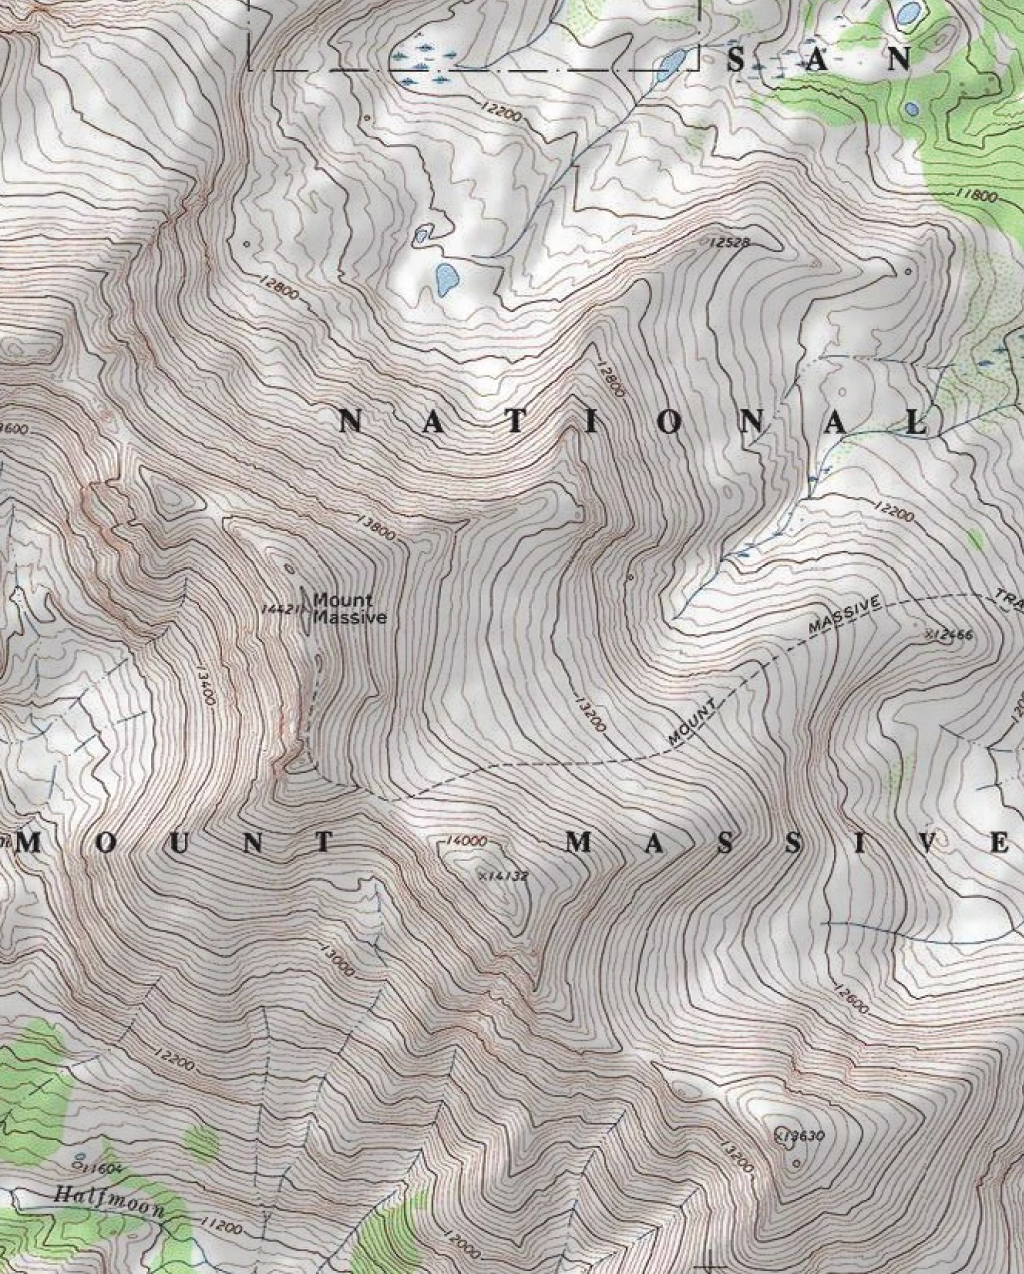 Mount Massive Topo Map Swatch